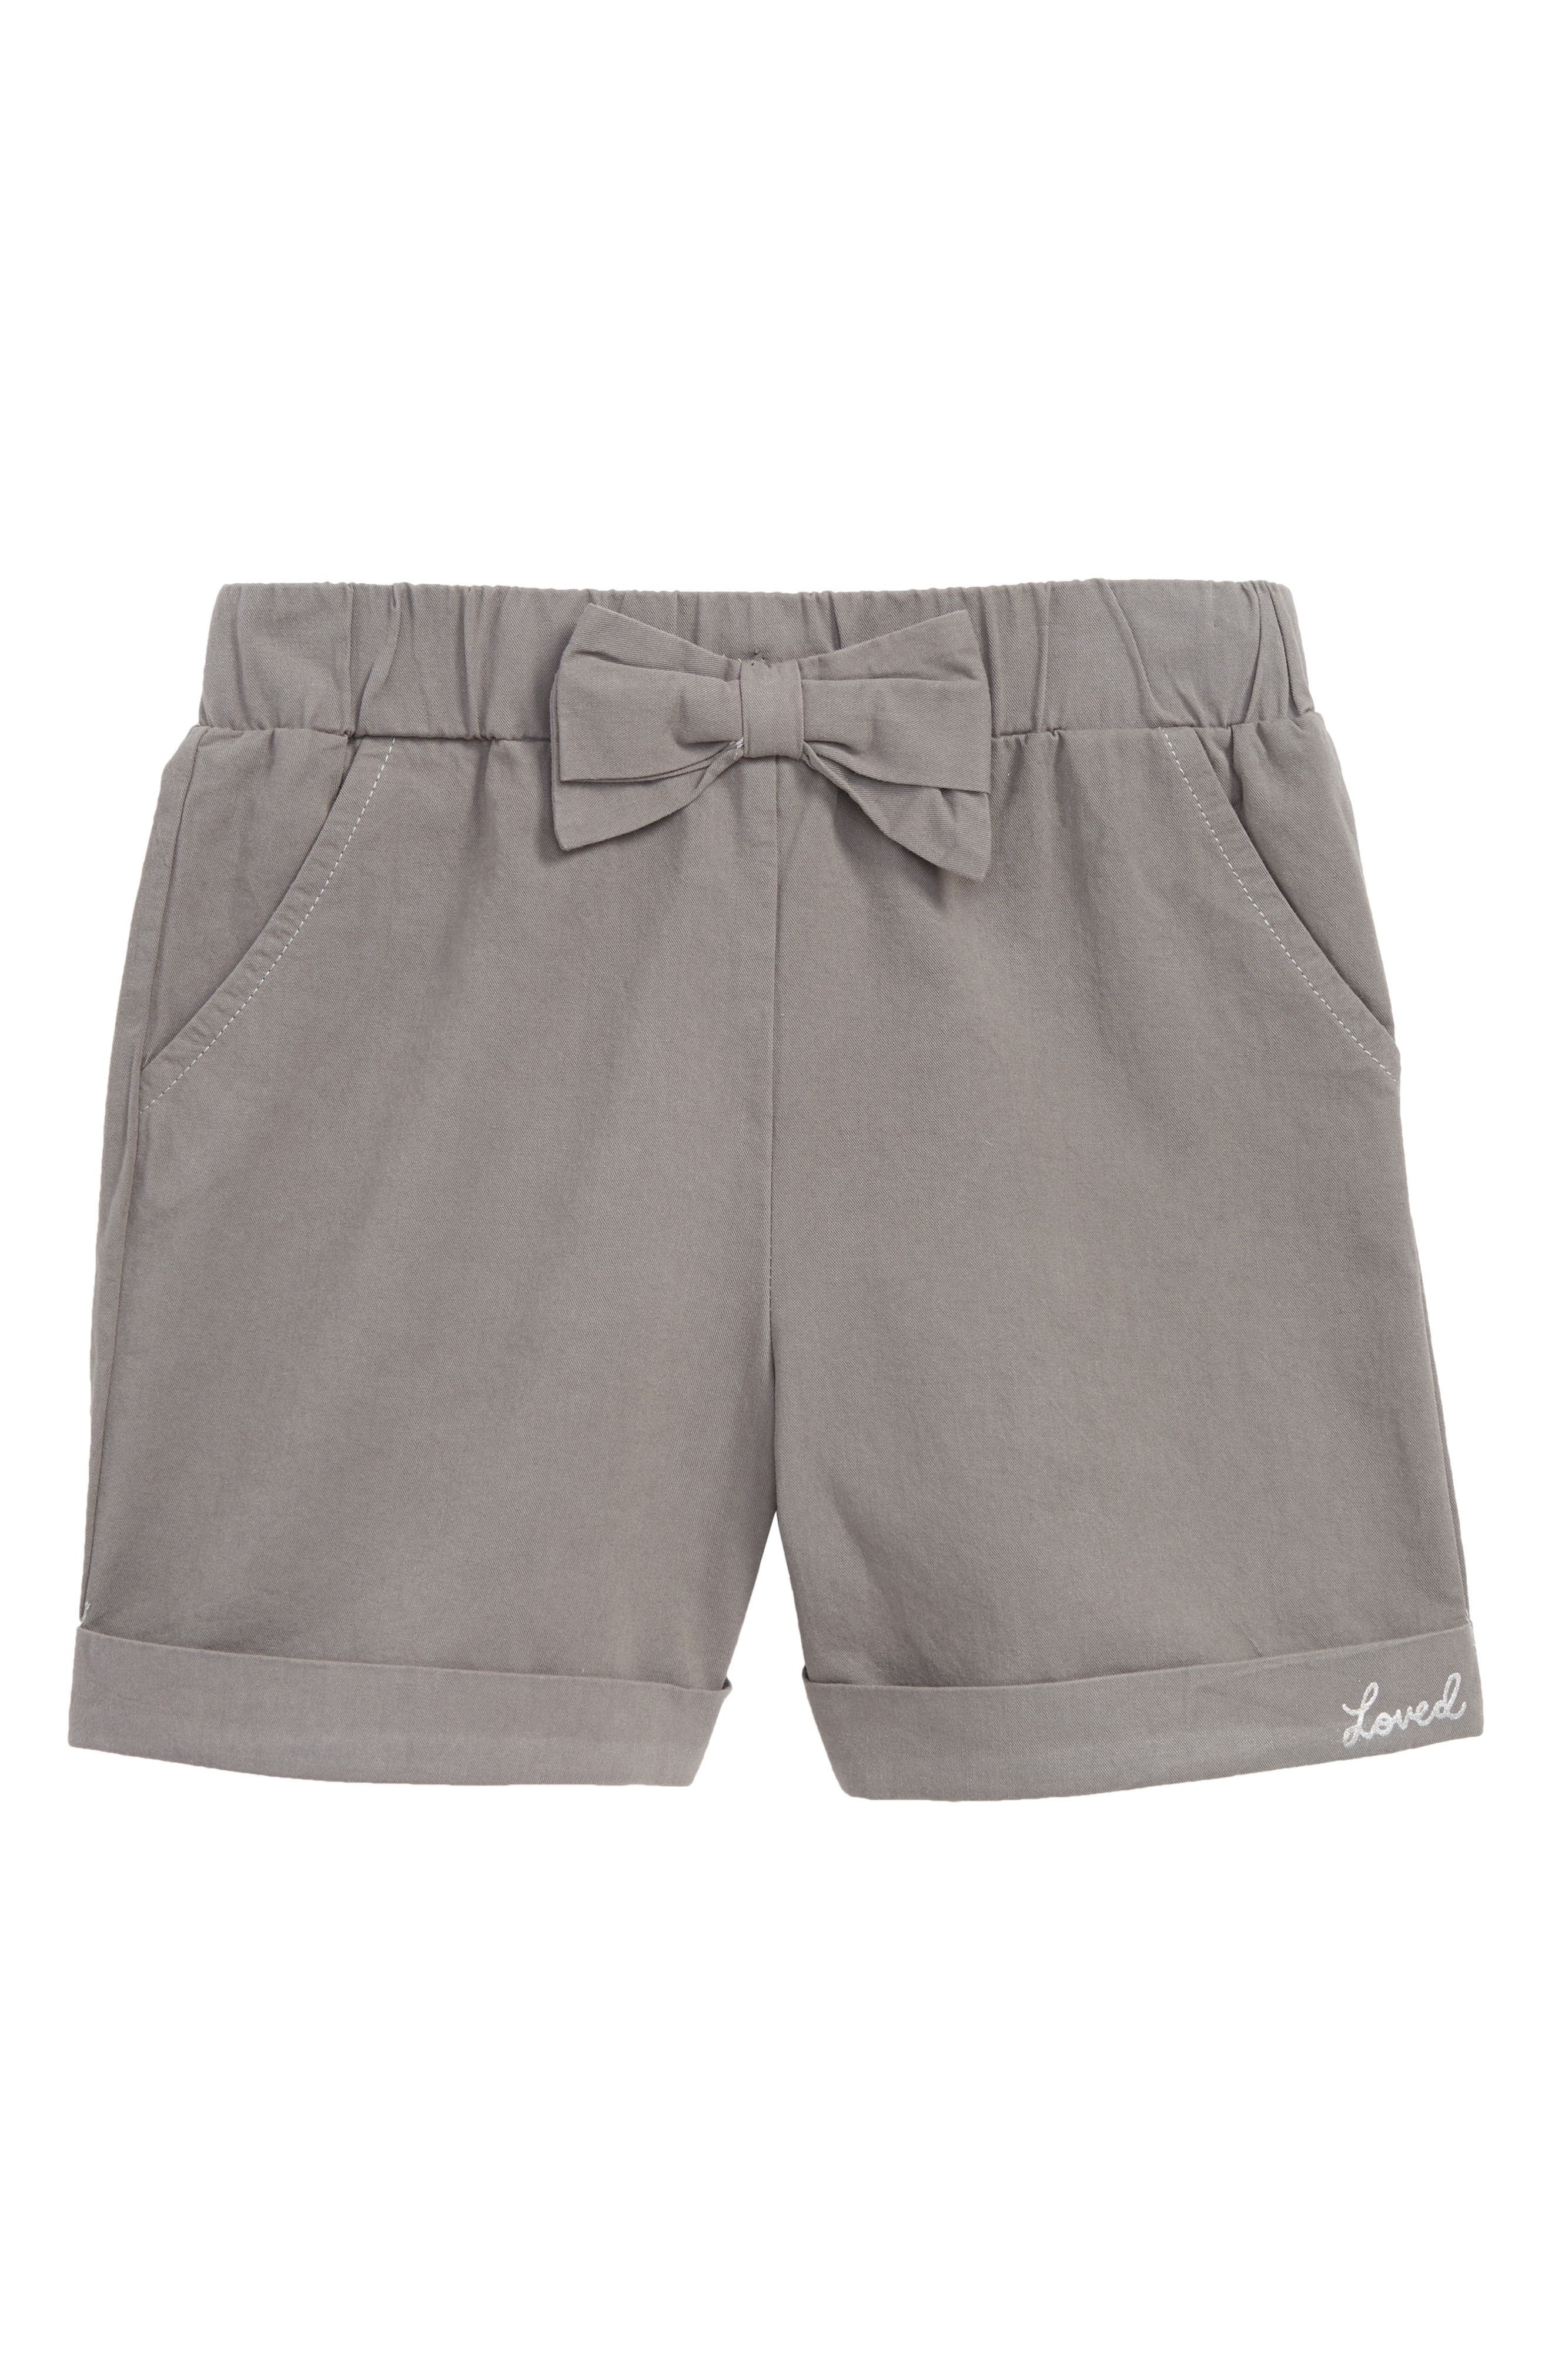 Cuffed Shorts,                         Main,                         color, Charcoal